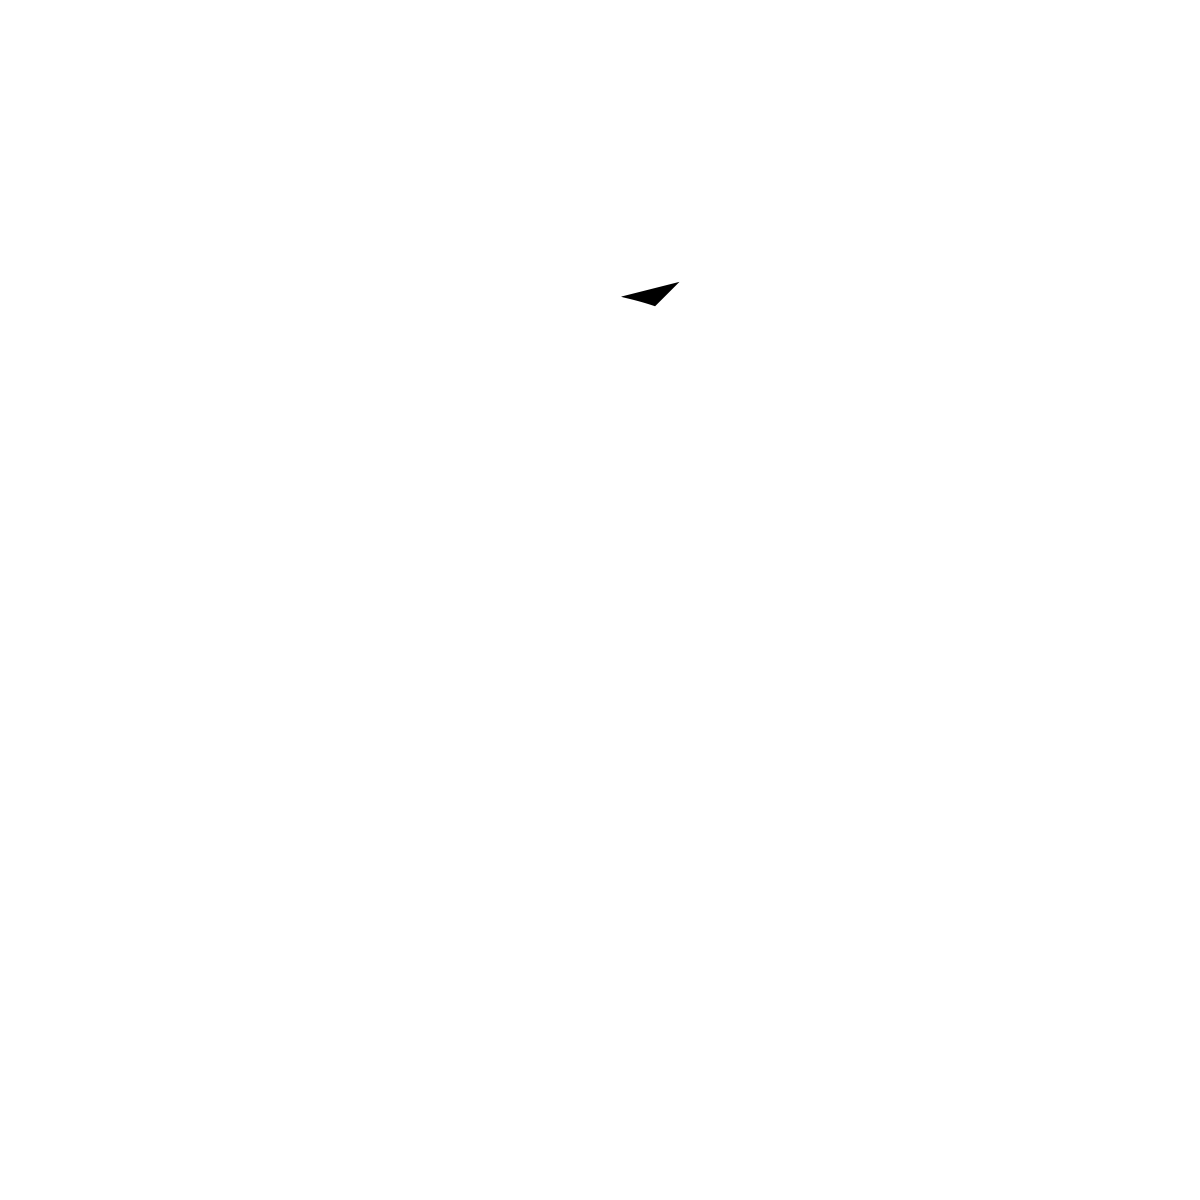 http://www.swanseadentistry.com/wp-content/uploads/2015/11/laser-dentistry-white.png